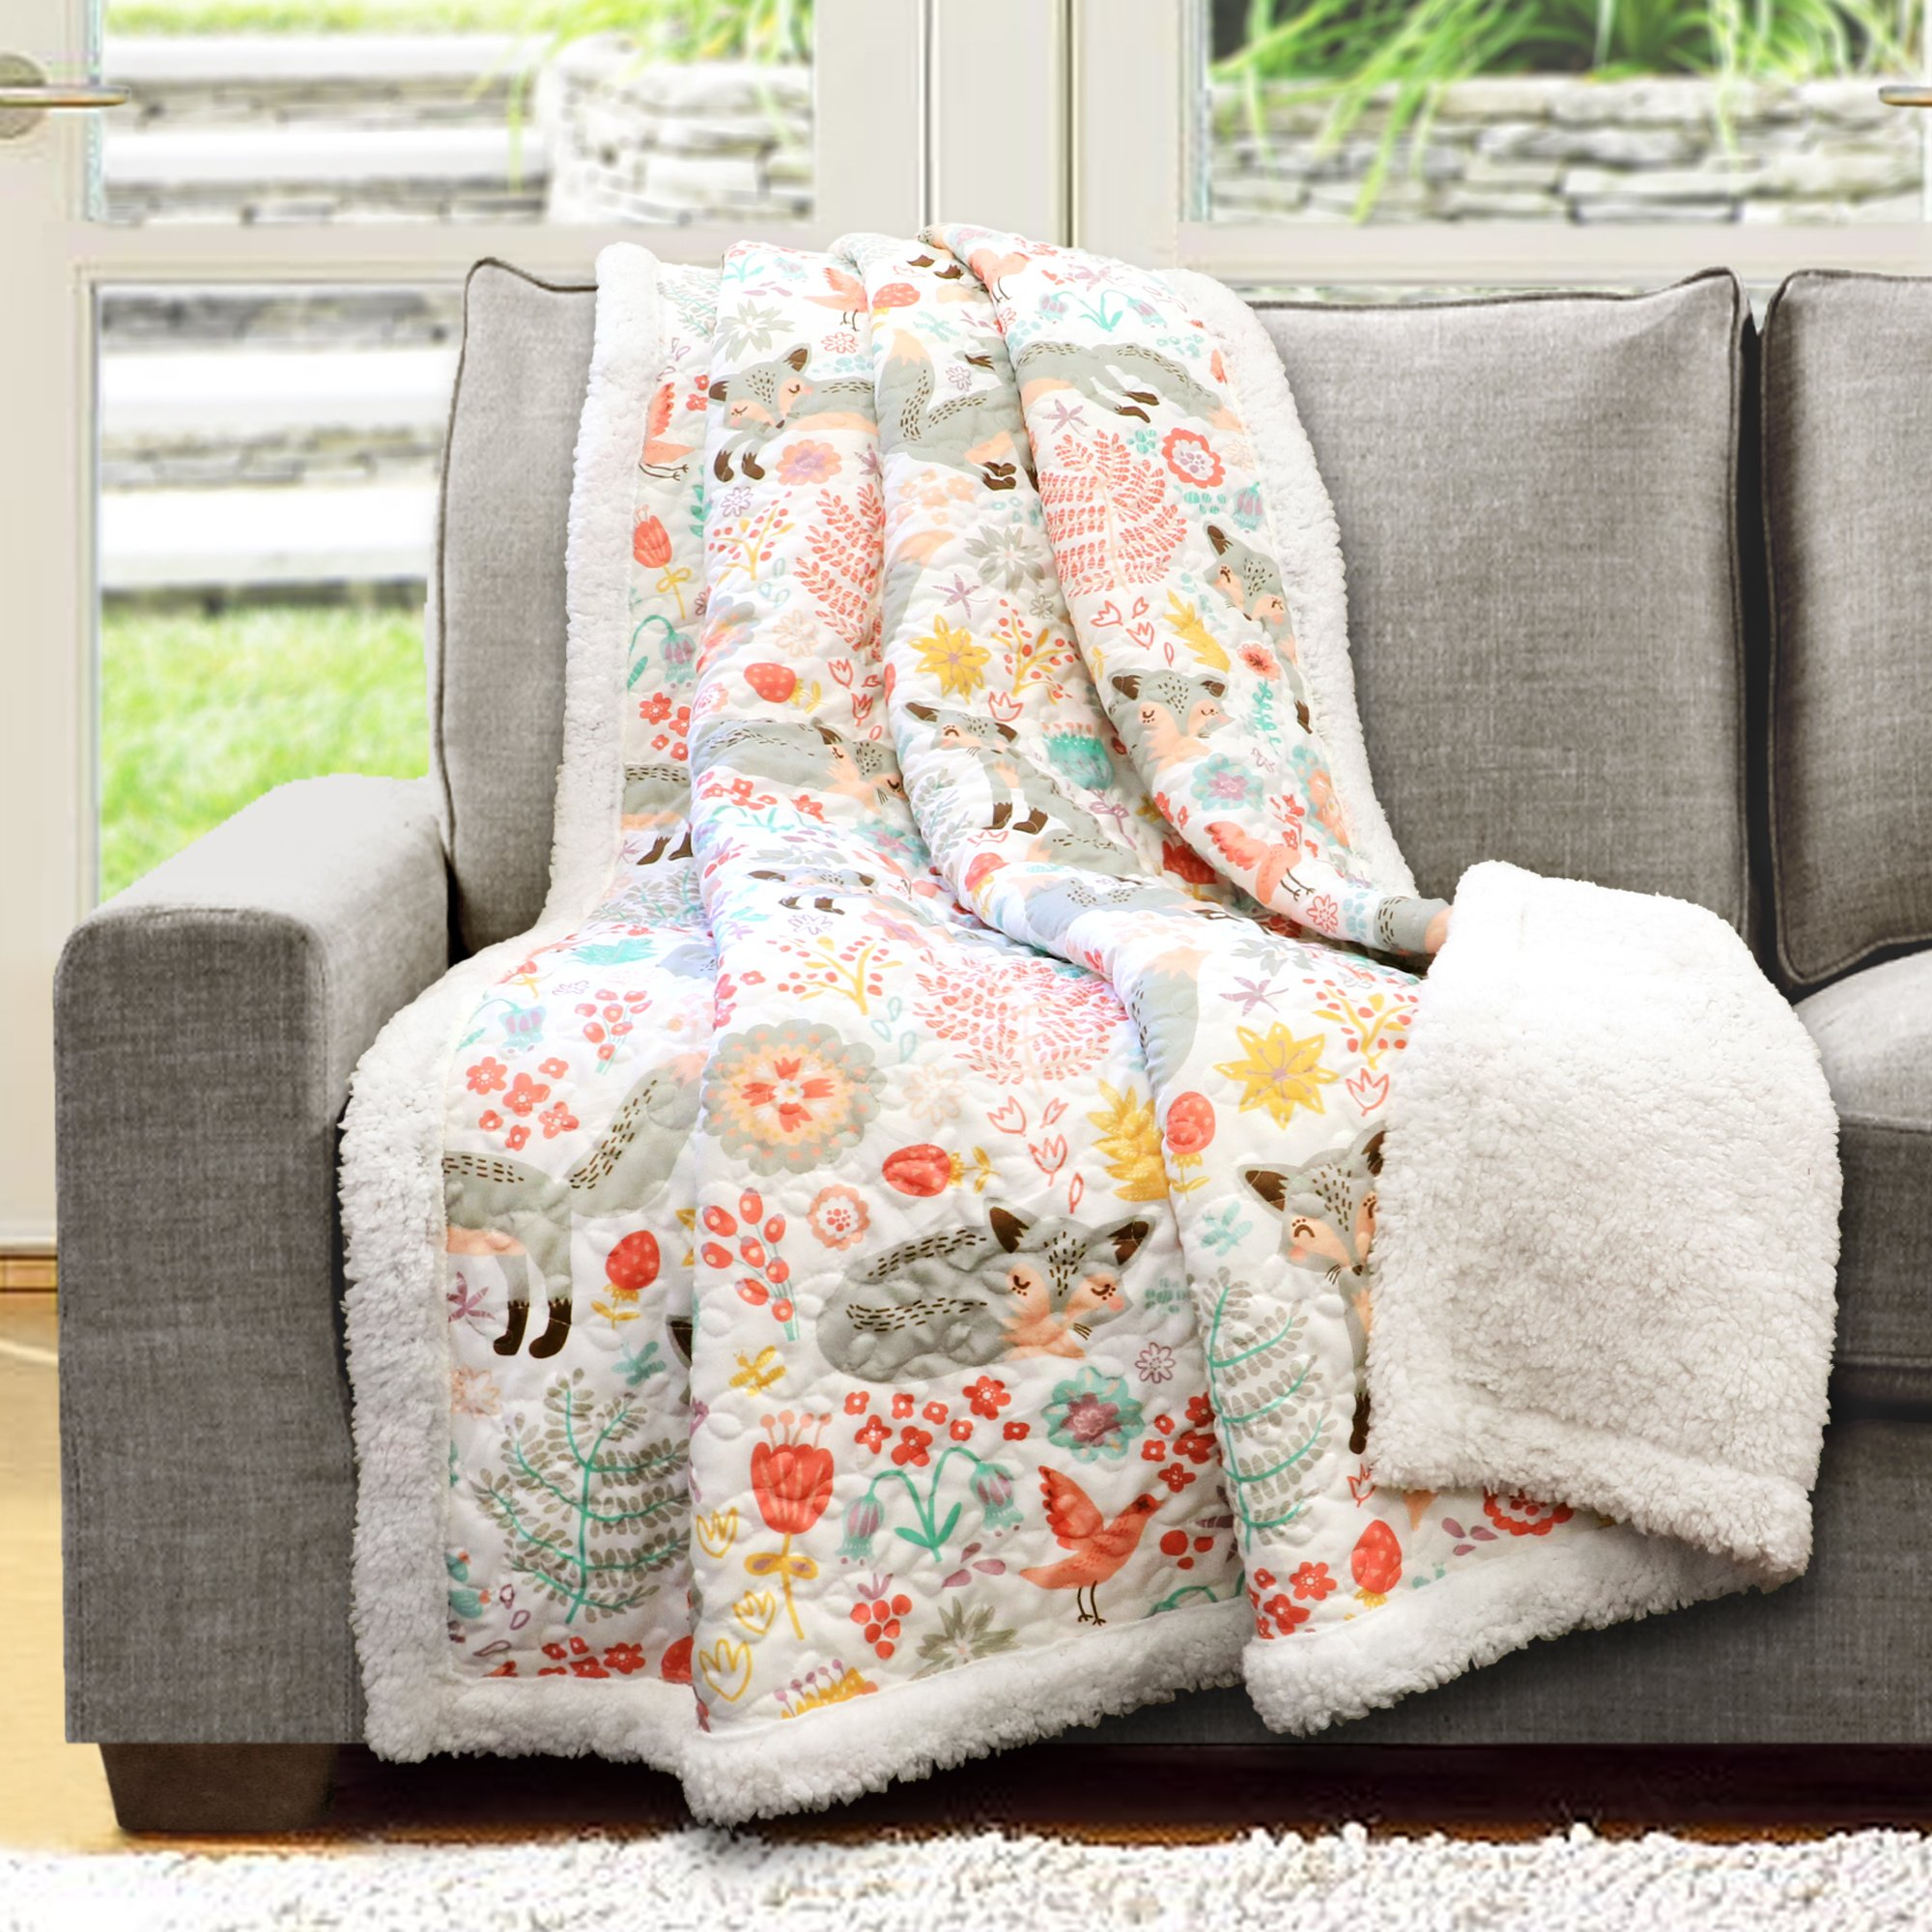 Lush Decor Pixie Fox Throw Fuzzy Reversible Sherpa Blanket, 60'' x 50'', Gray & Pink by Lush Decor